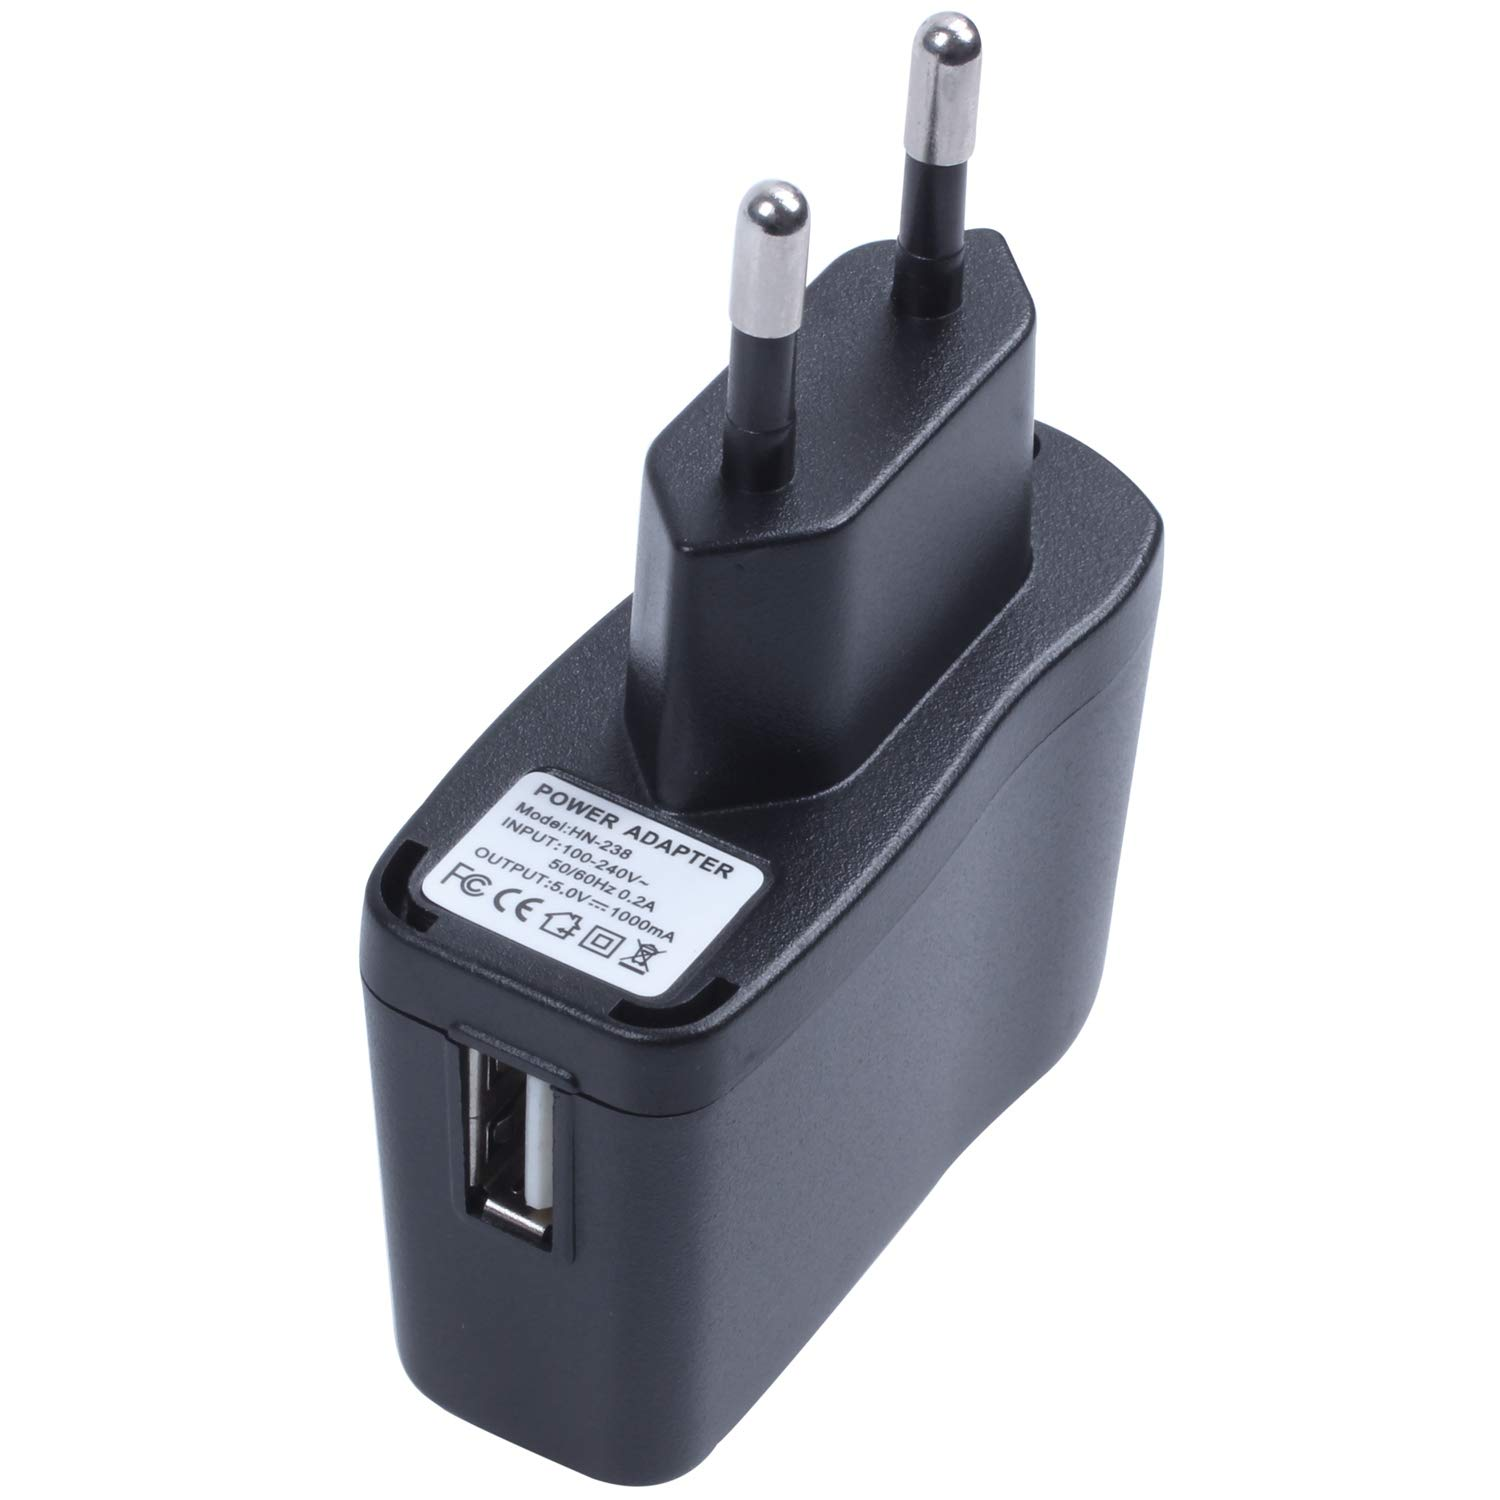 with Europe Plug Noir Nrpfell Battery Charger for VISUO XS809 XS809HC XS809W XS809HW USB 3 in 1 for Lithium ION Battery USB Charger Quadcopter Drone